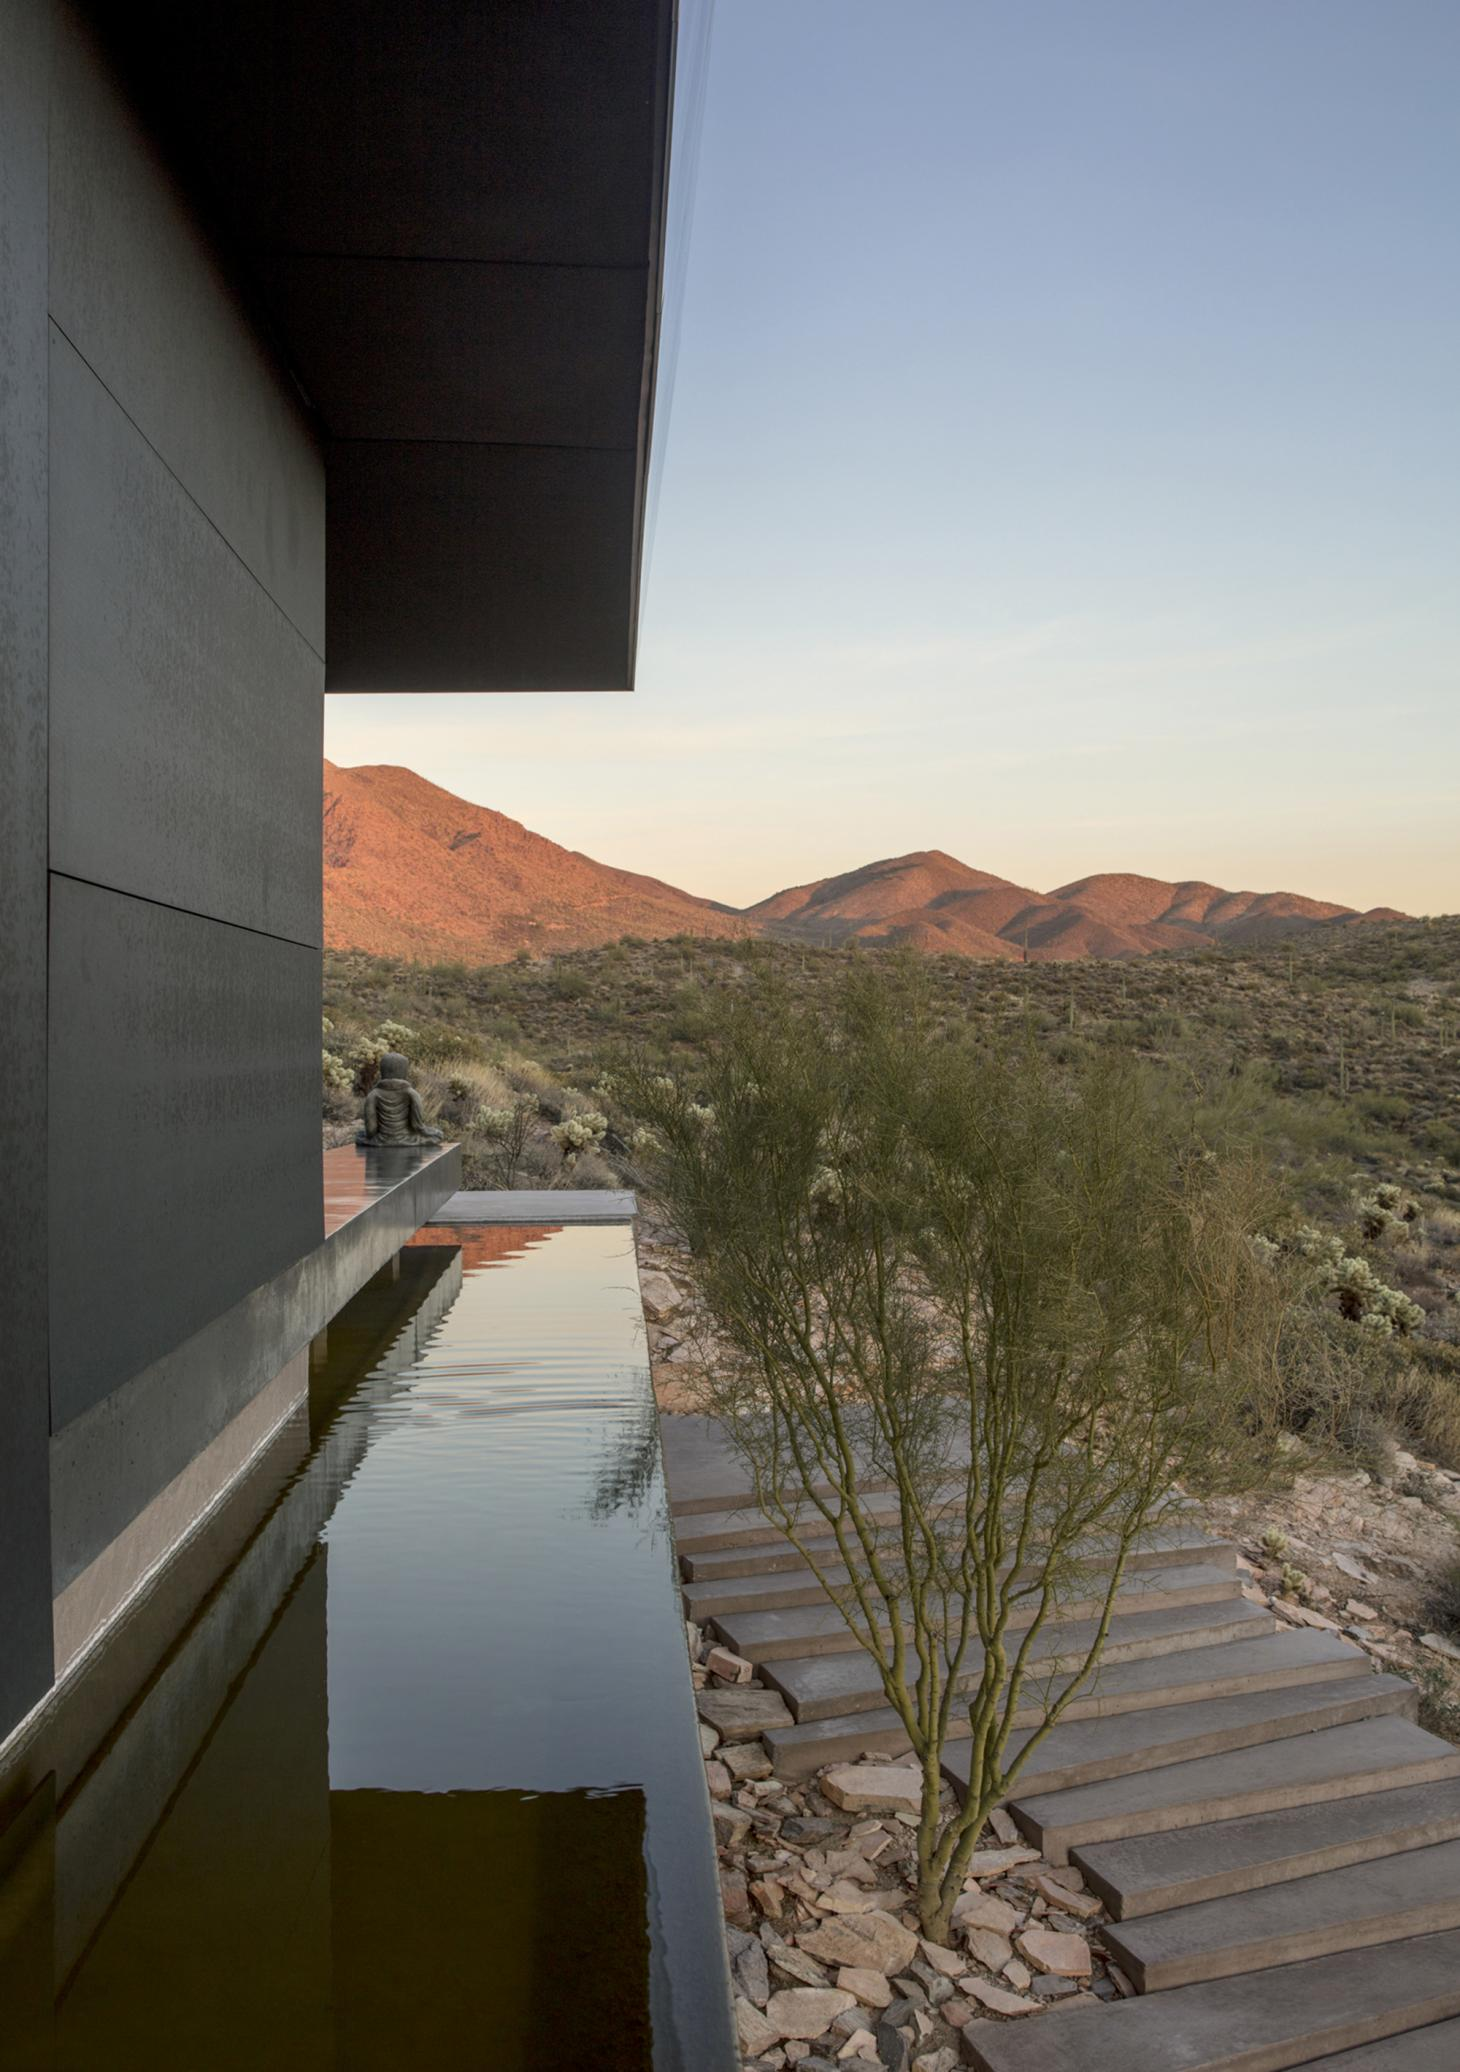 The landscape framed from Hidden Valley house in Arizona